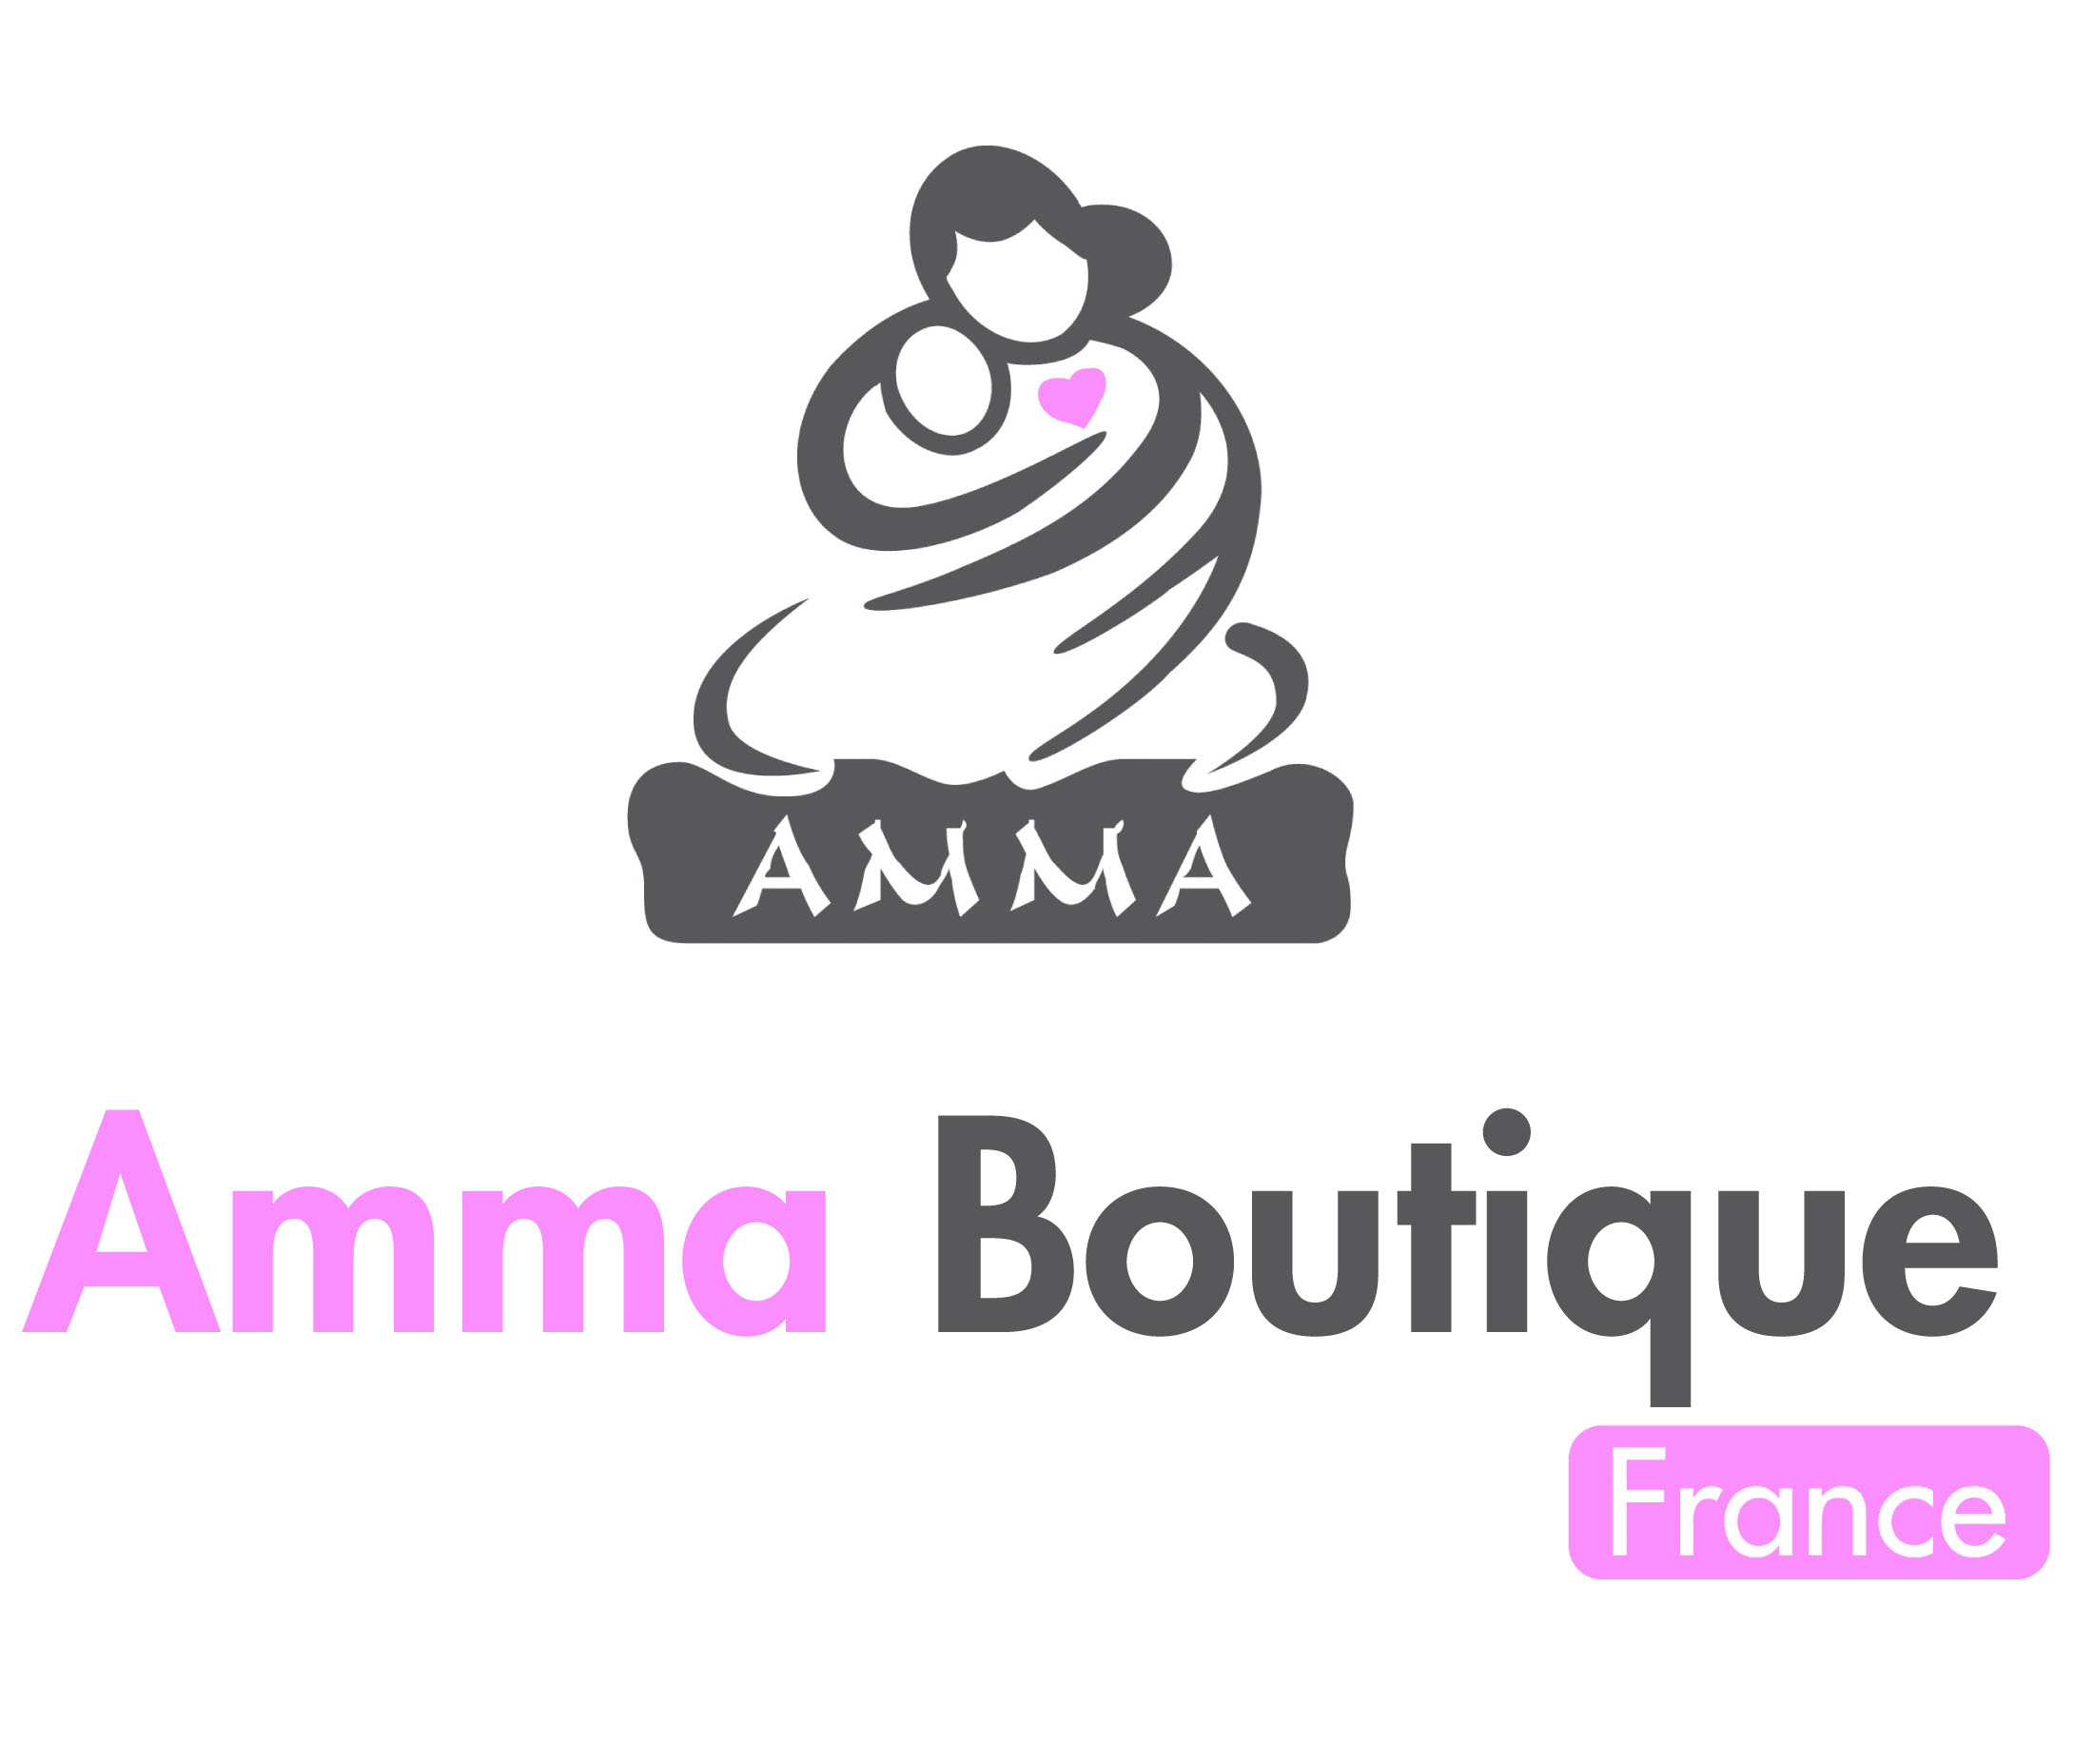 logo ammaboutique hd